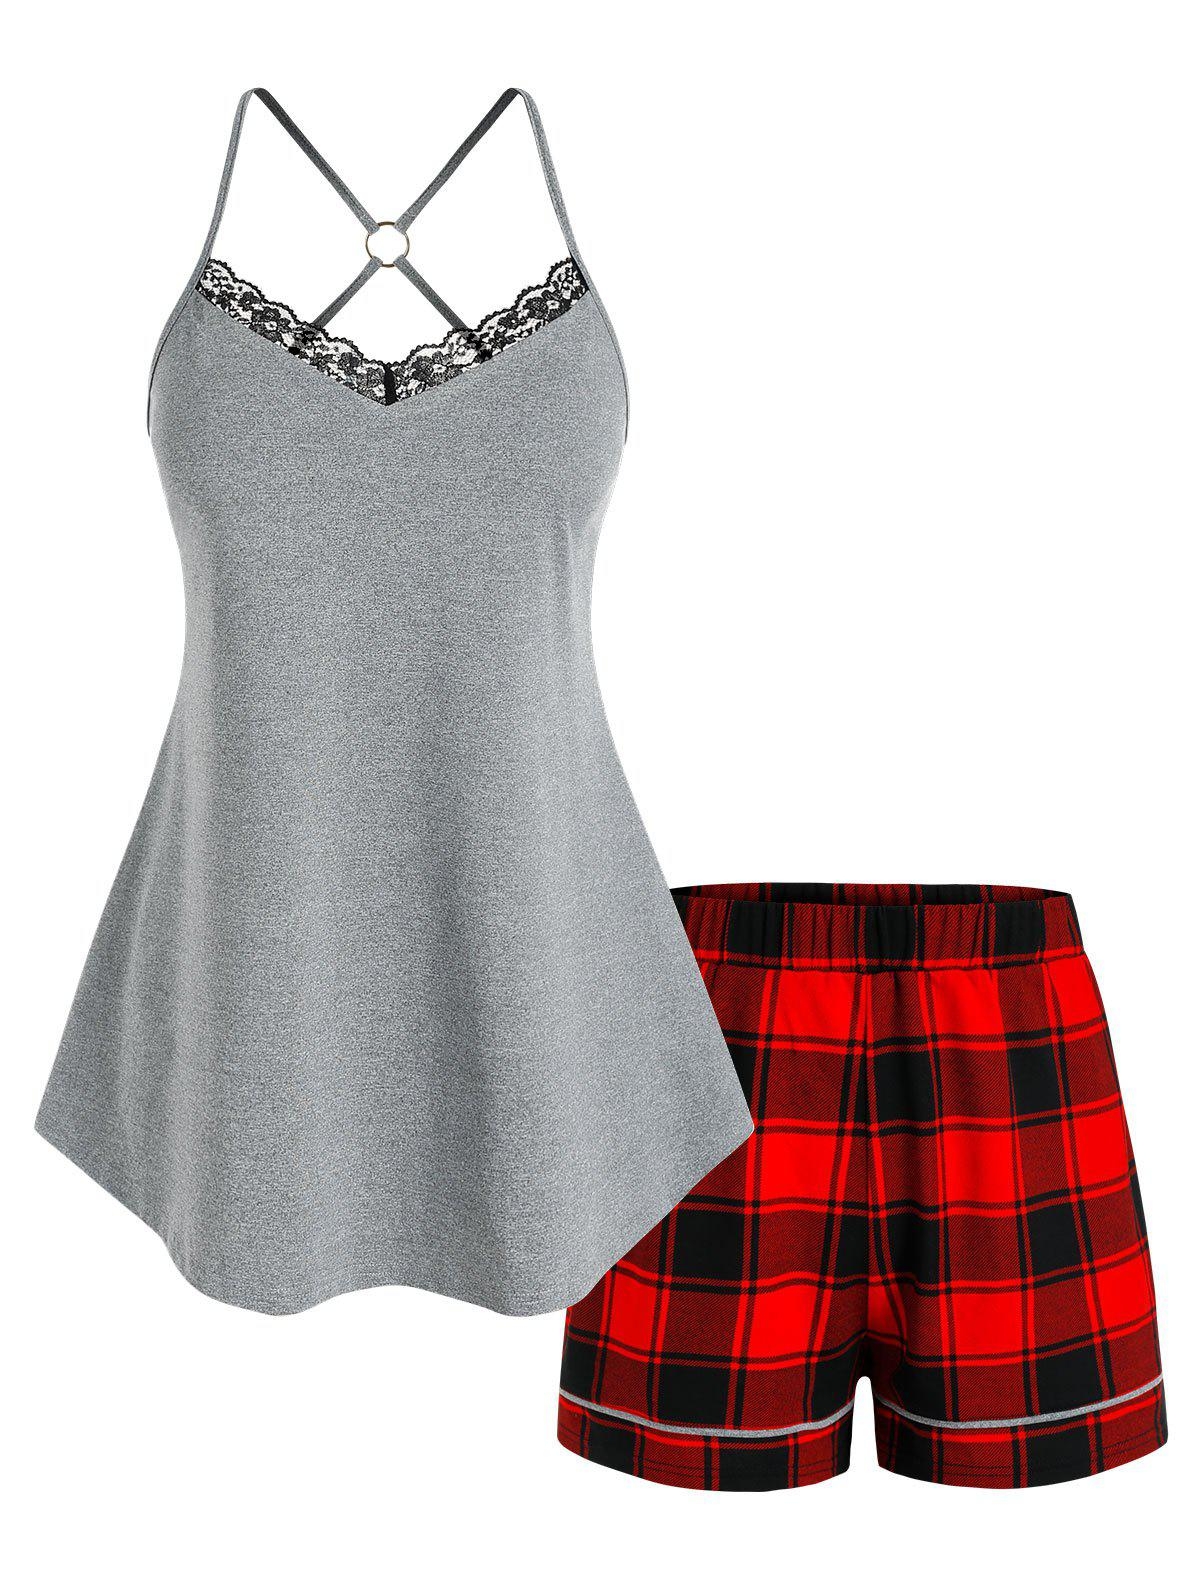 Shop Plus Size Strappy O Ring Top and Plaid Shorts Pajamas Set